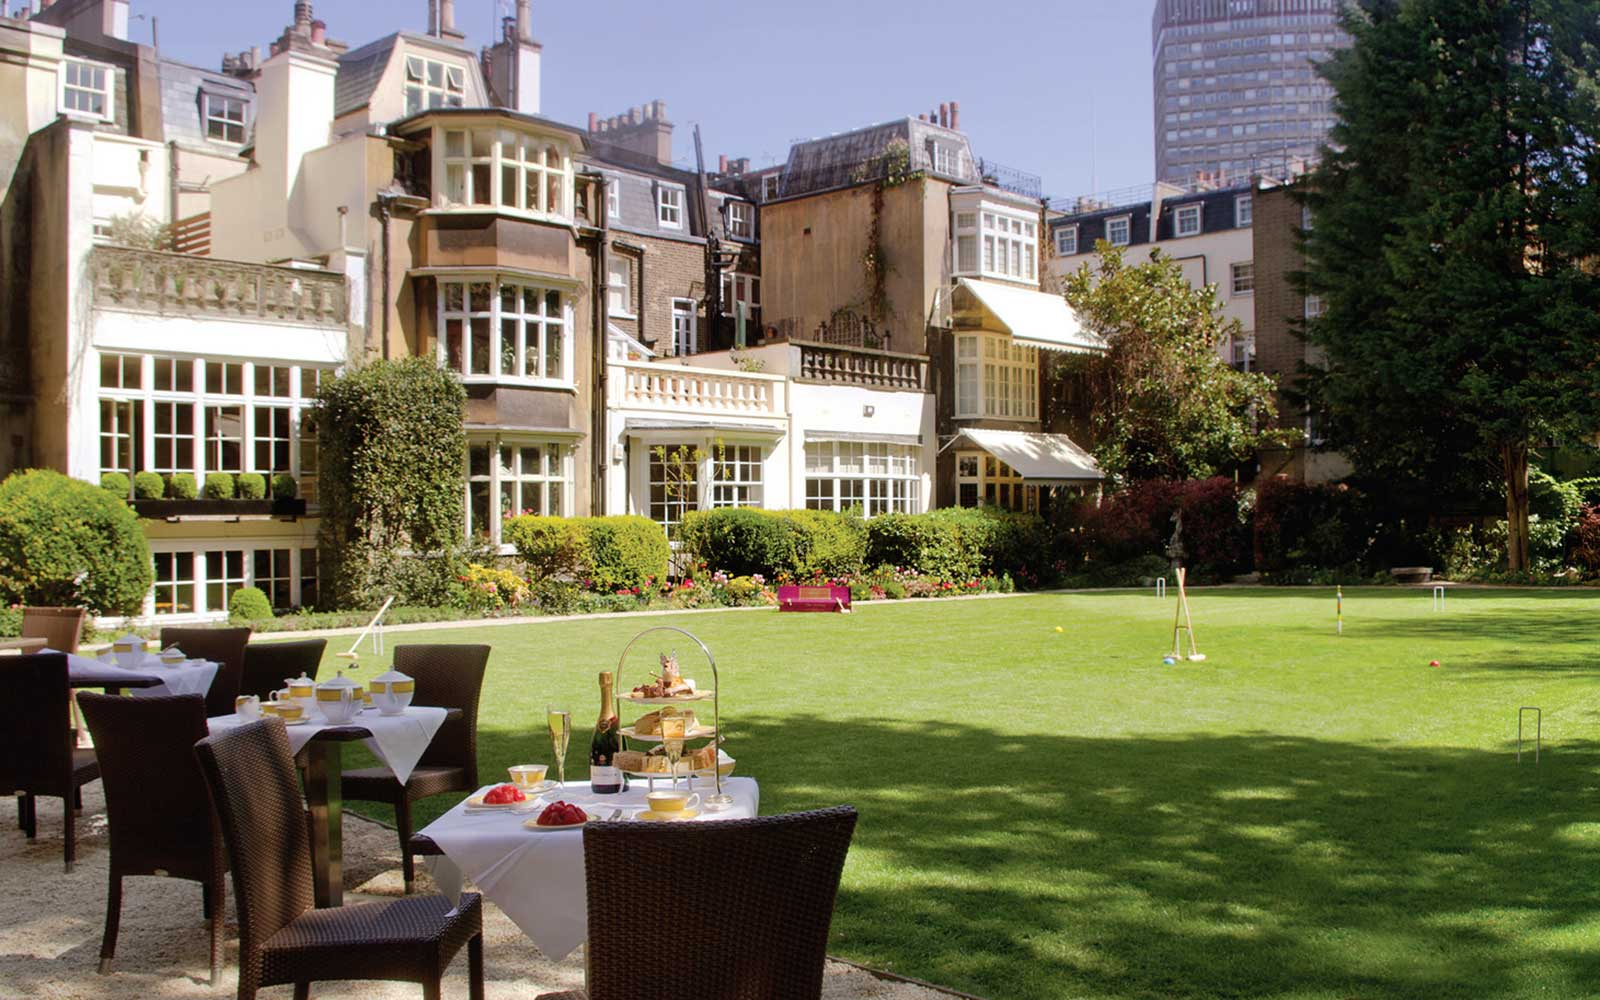 The Goring Hotel in London